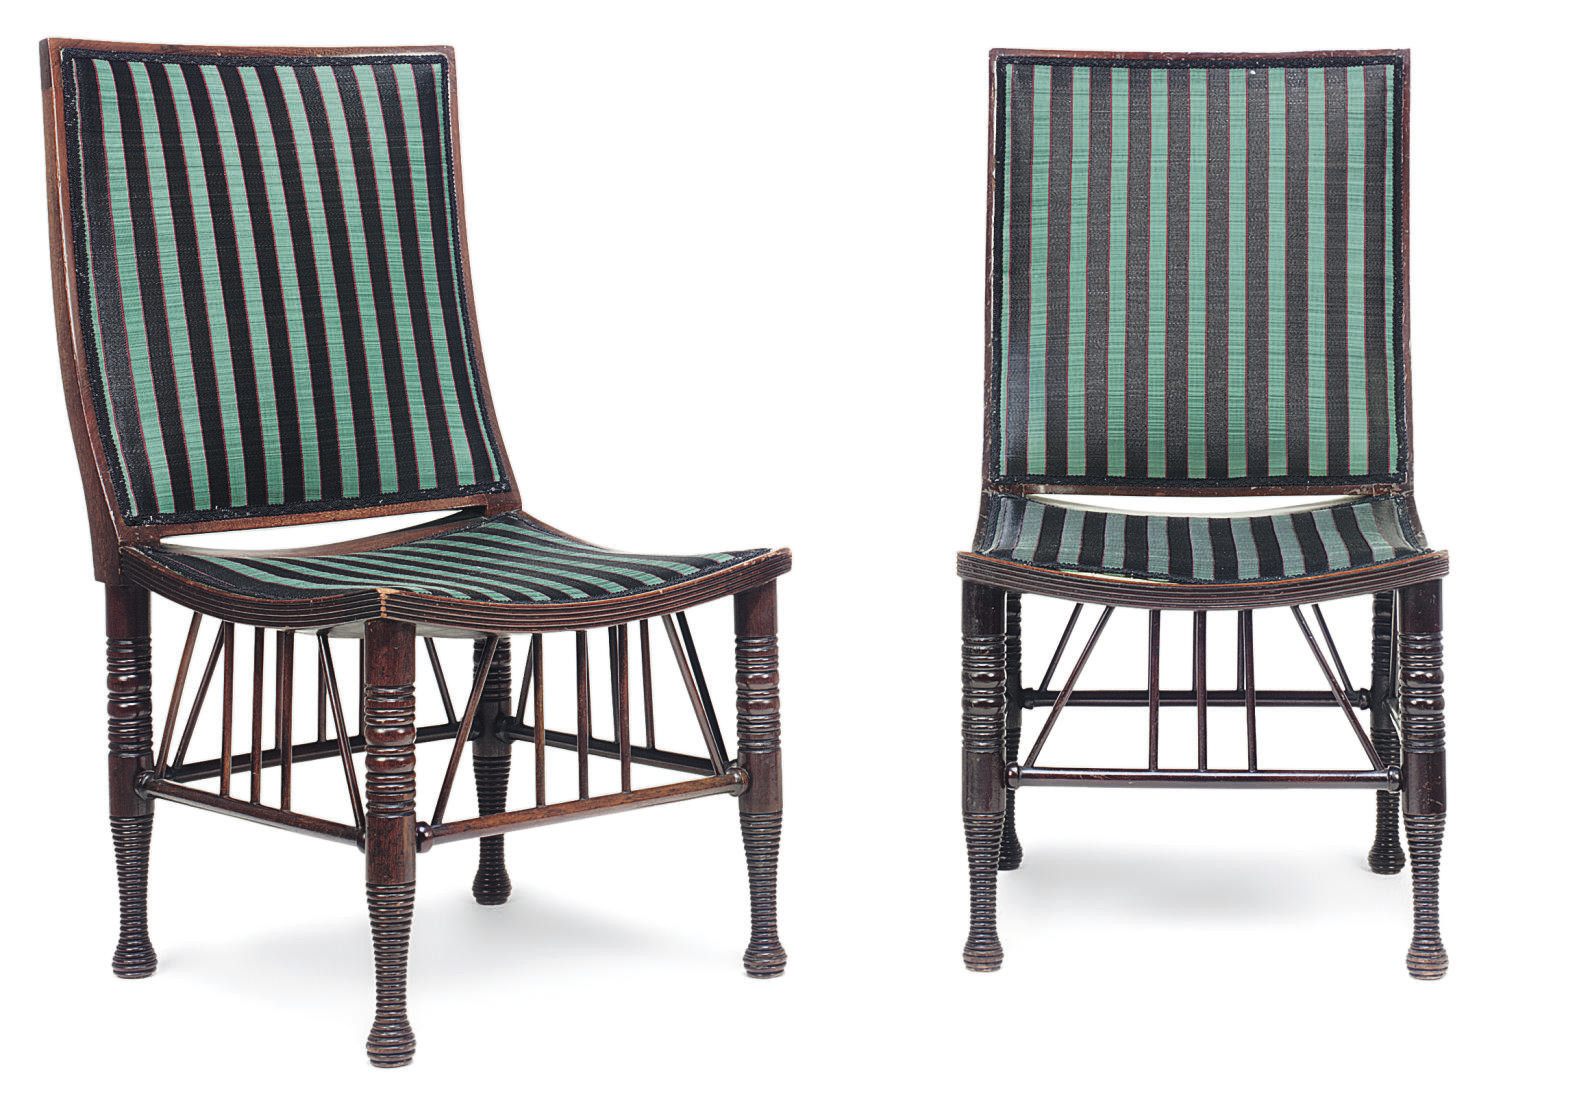 A PAIR OF ARTS AND CRAFTS MAHOGANY 'THEBES' SIDE CHAIRS